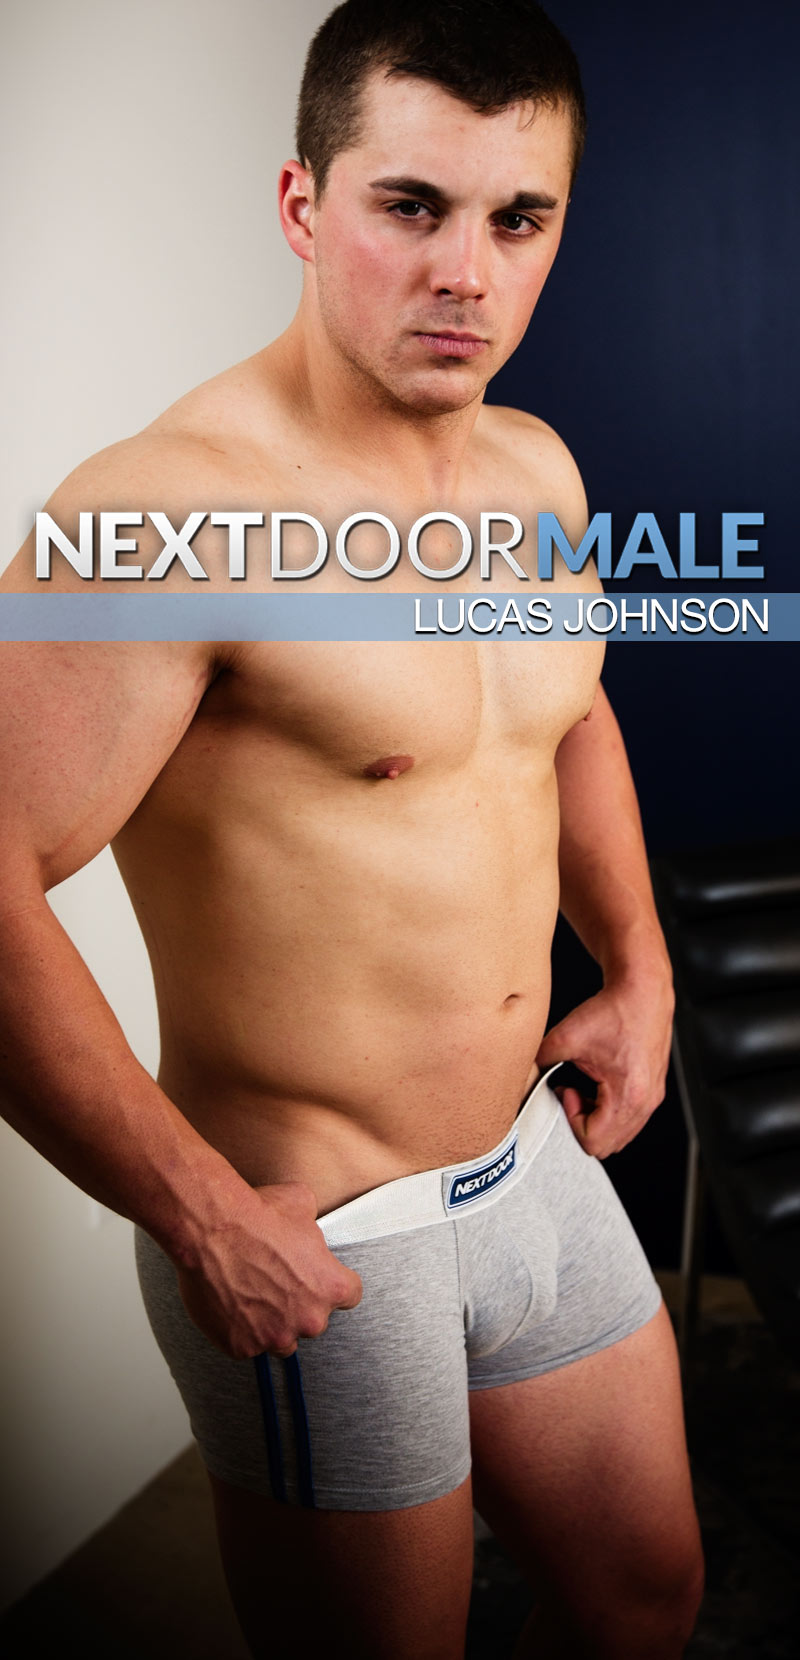 Lucas Johnson at Next Door Male